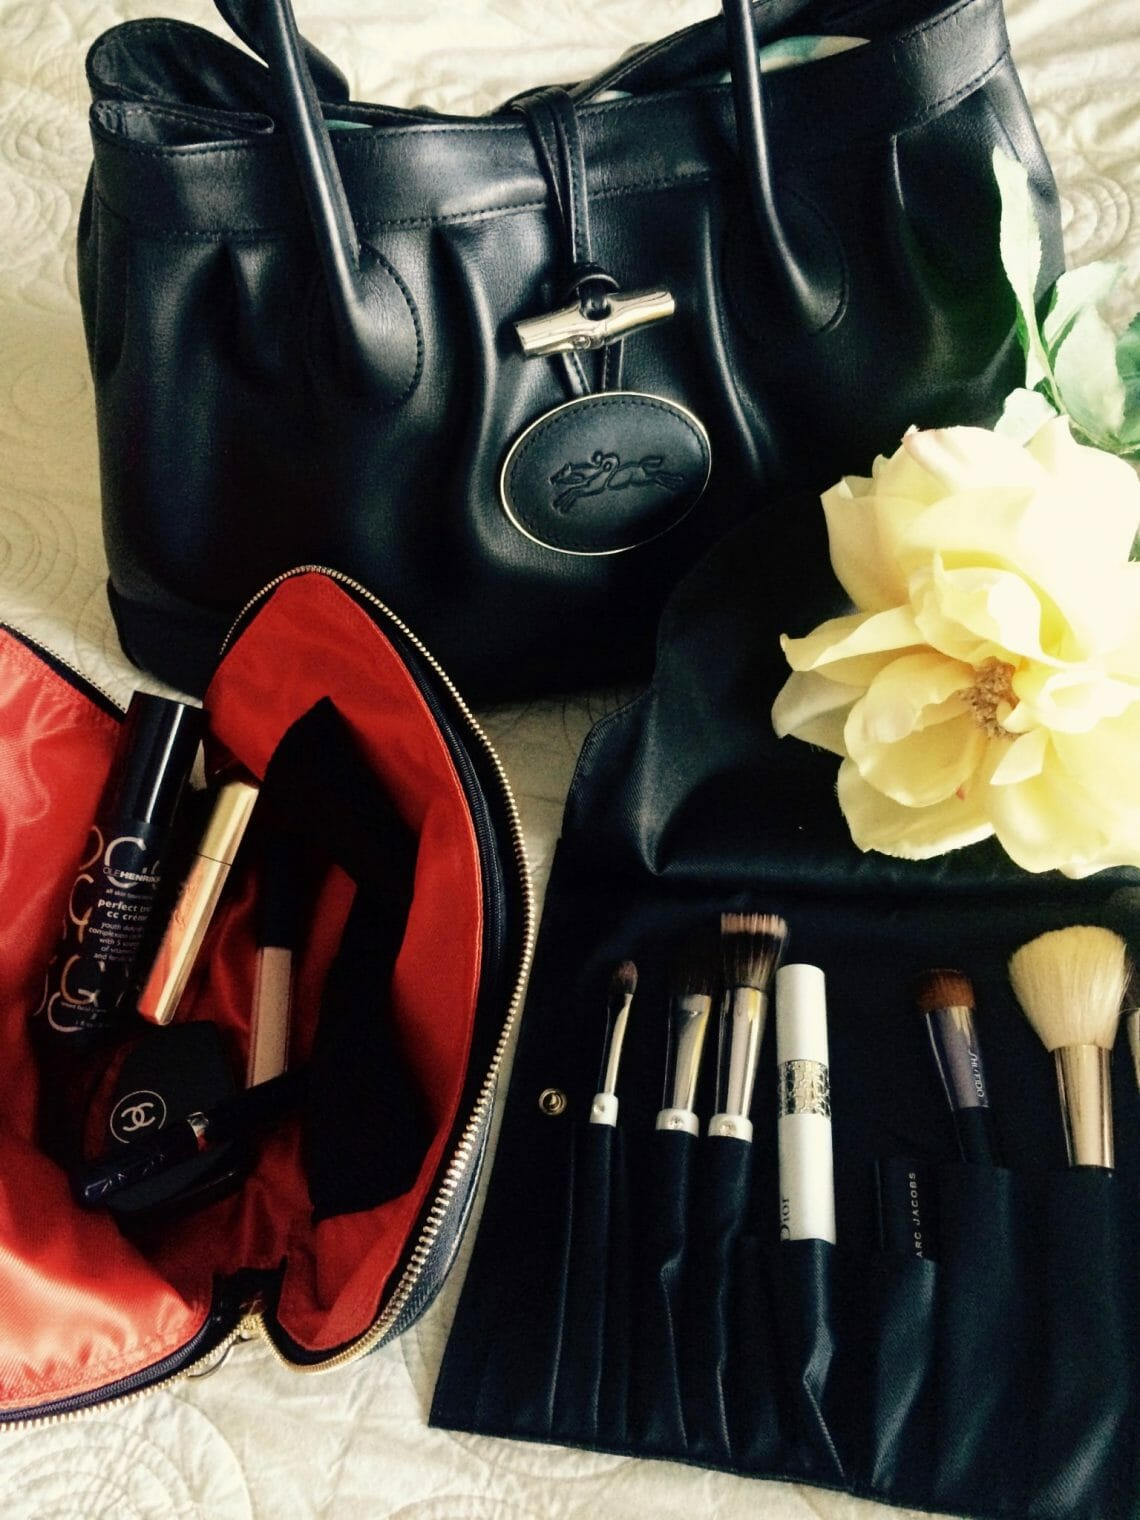 Kusshi makeup bag and brush holder Little Luxuries: Kusshi Improves the Makeup Bag - EAT LOVE SAVOR International luxury lifestyle magazine and bookazines